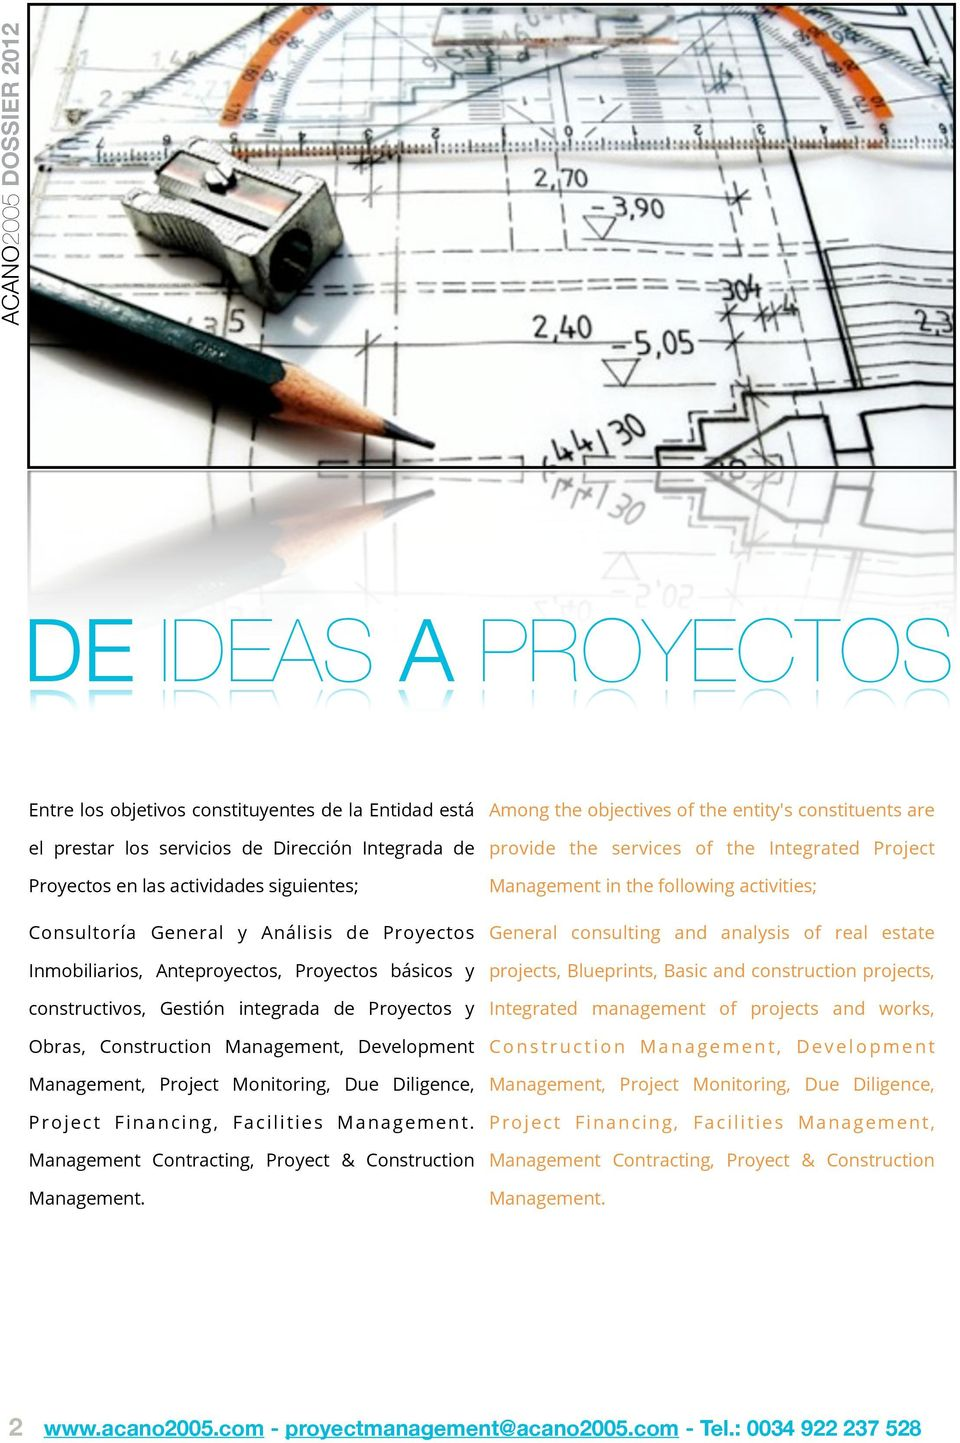 Diligence, Project Financing, Facilities Management. Management Contracting, Proyect & Construction Management.